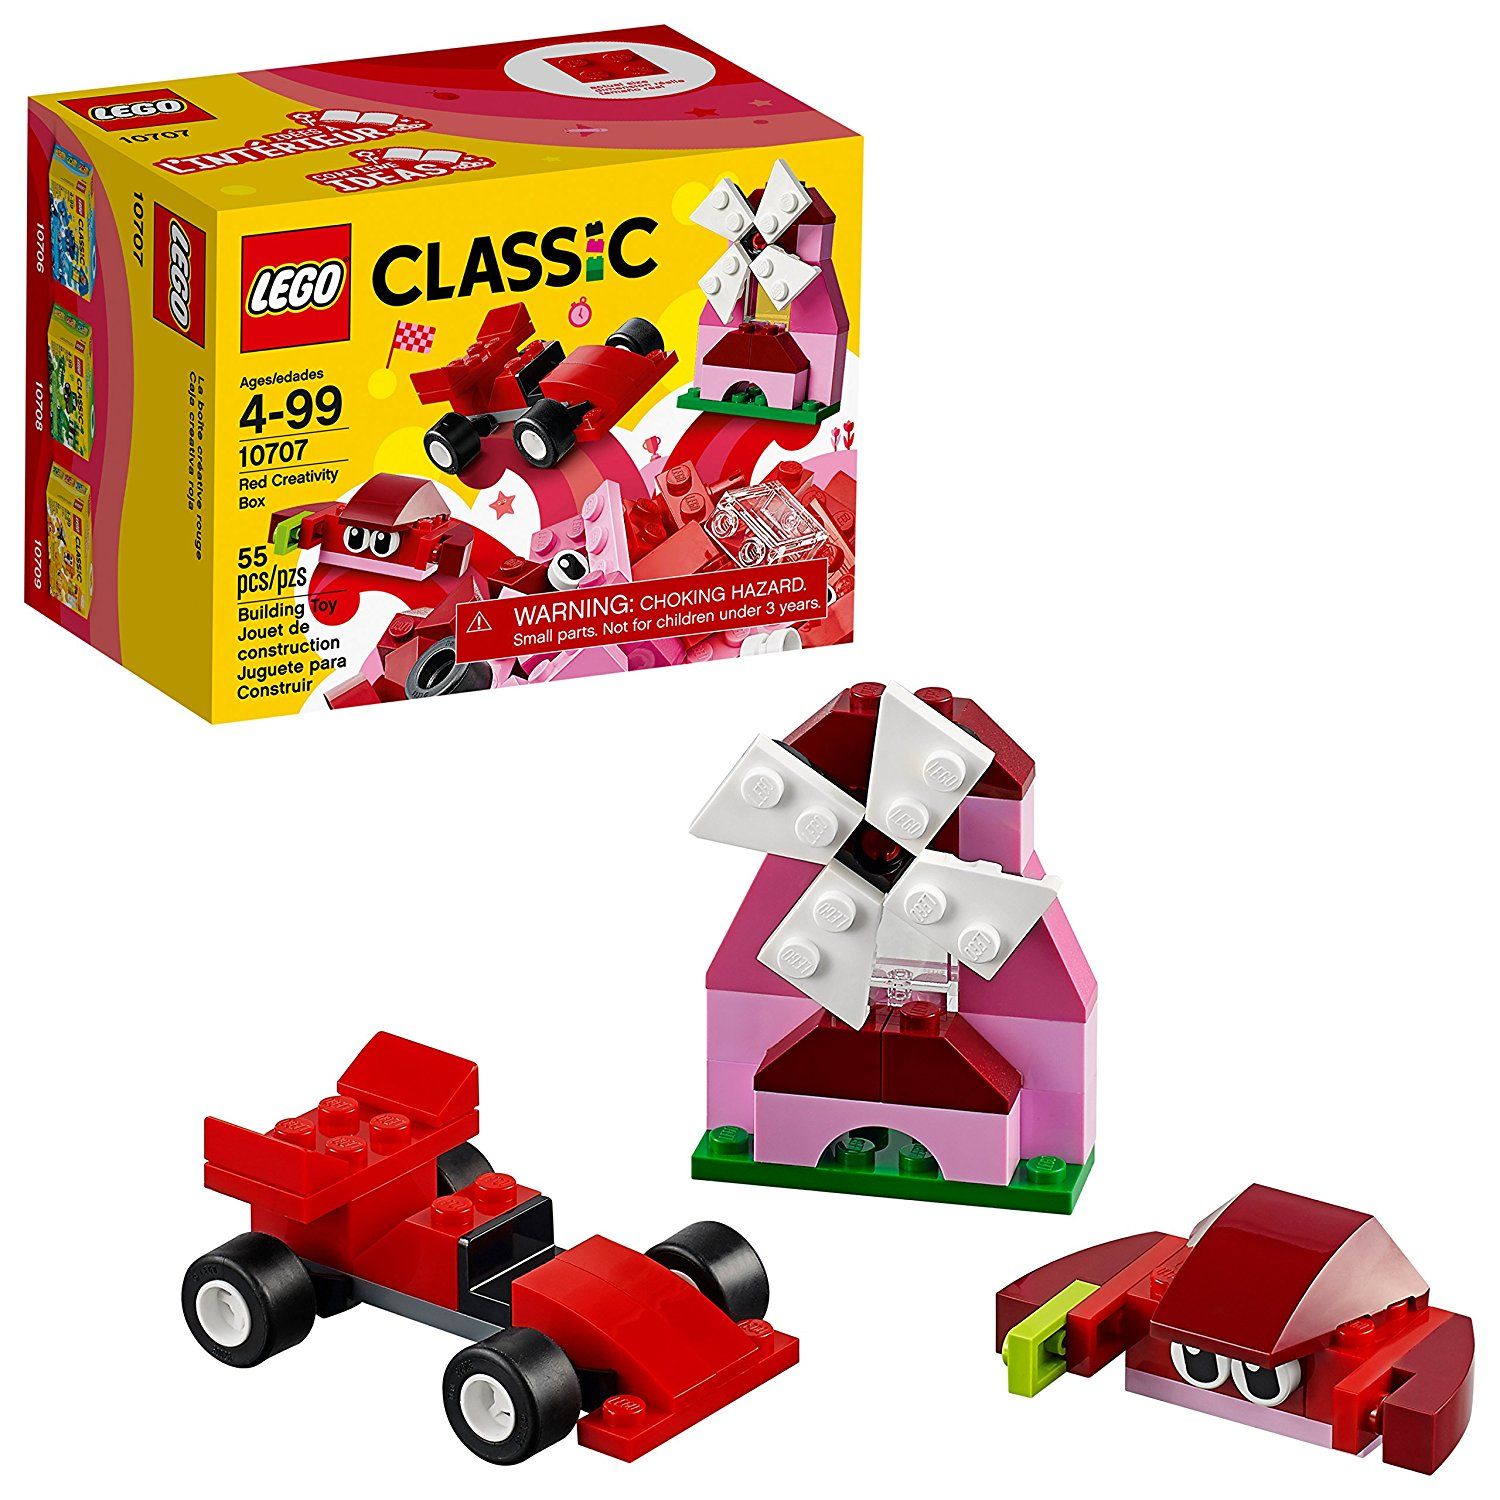 LEGO CLASSIC RED CREATIVE BOX BUILDING TOY 55PCS/PZS (4-99 AGE/EDADES) 10707